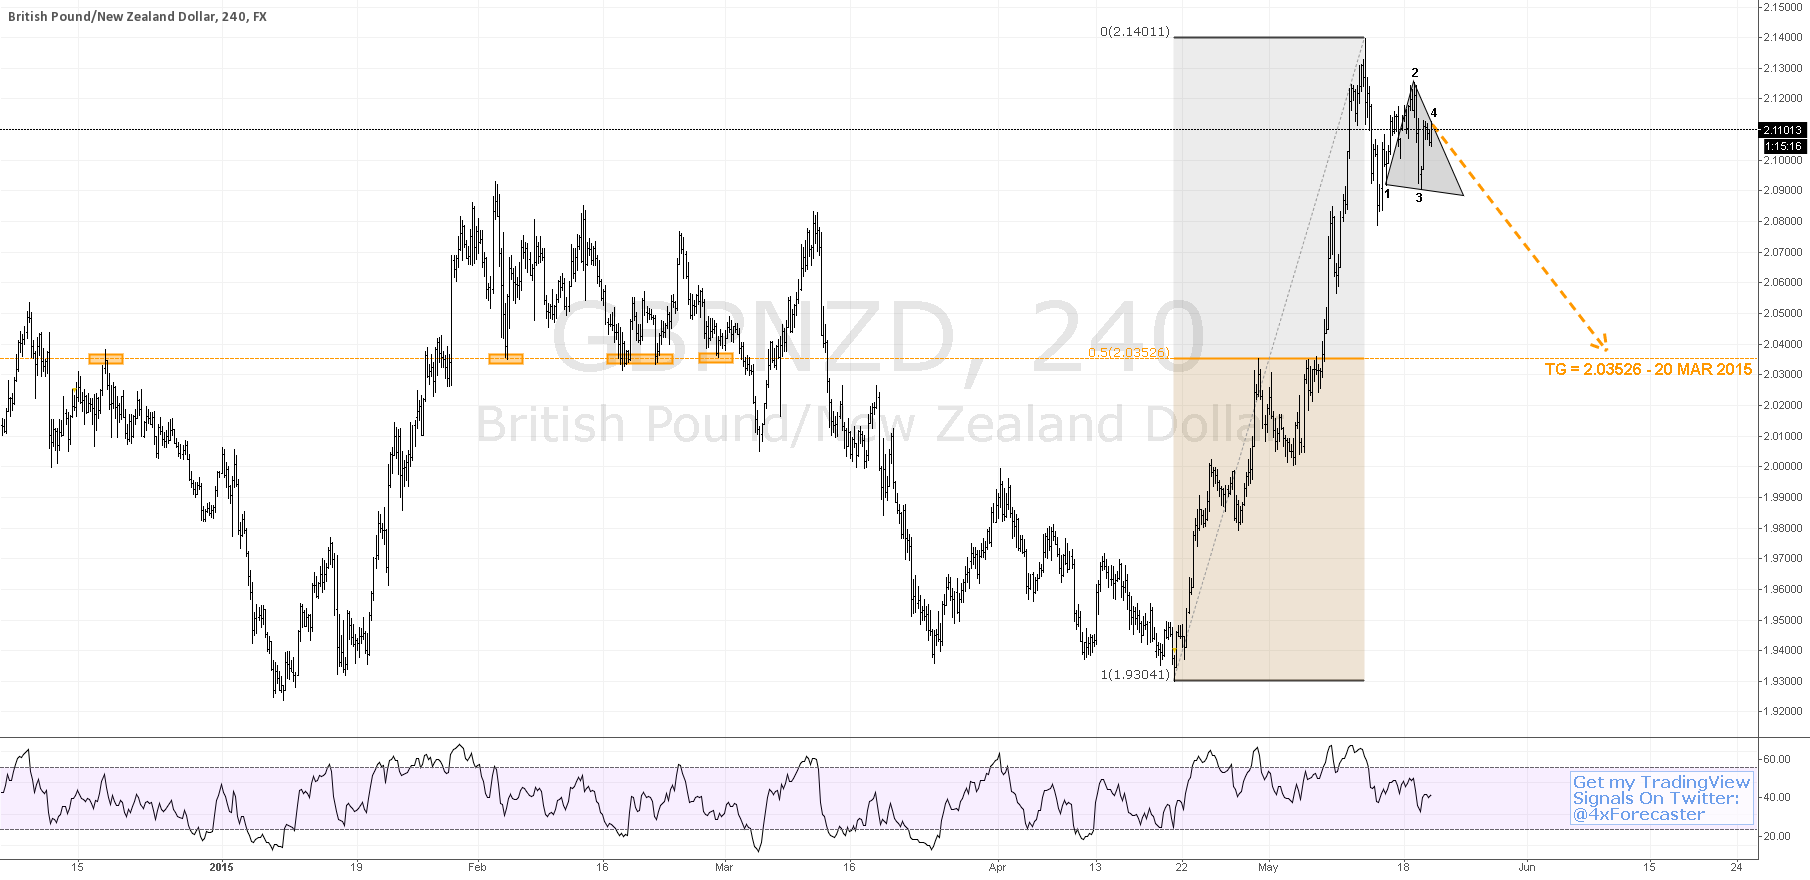 $GBP vs. $NZD Mulls 50% Decine To 2.03526 | #BOE #forex $USD